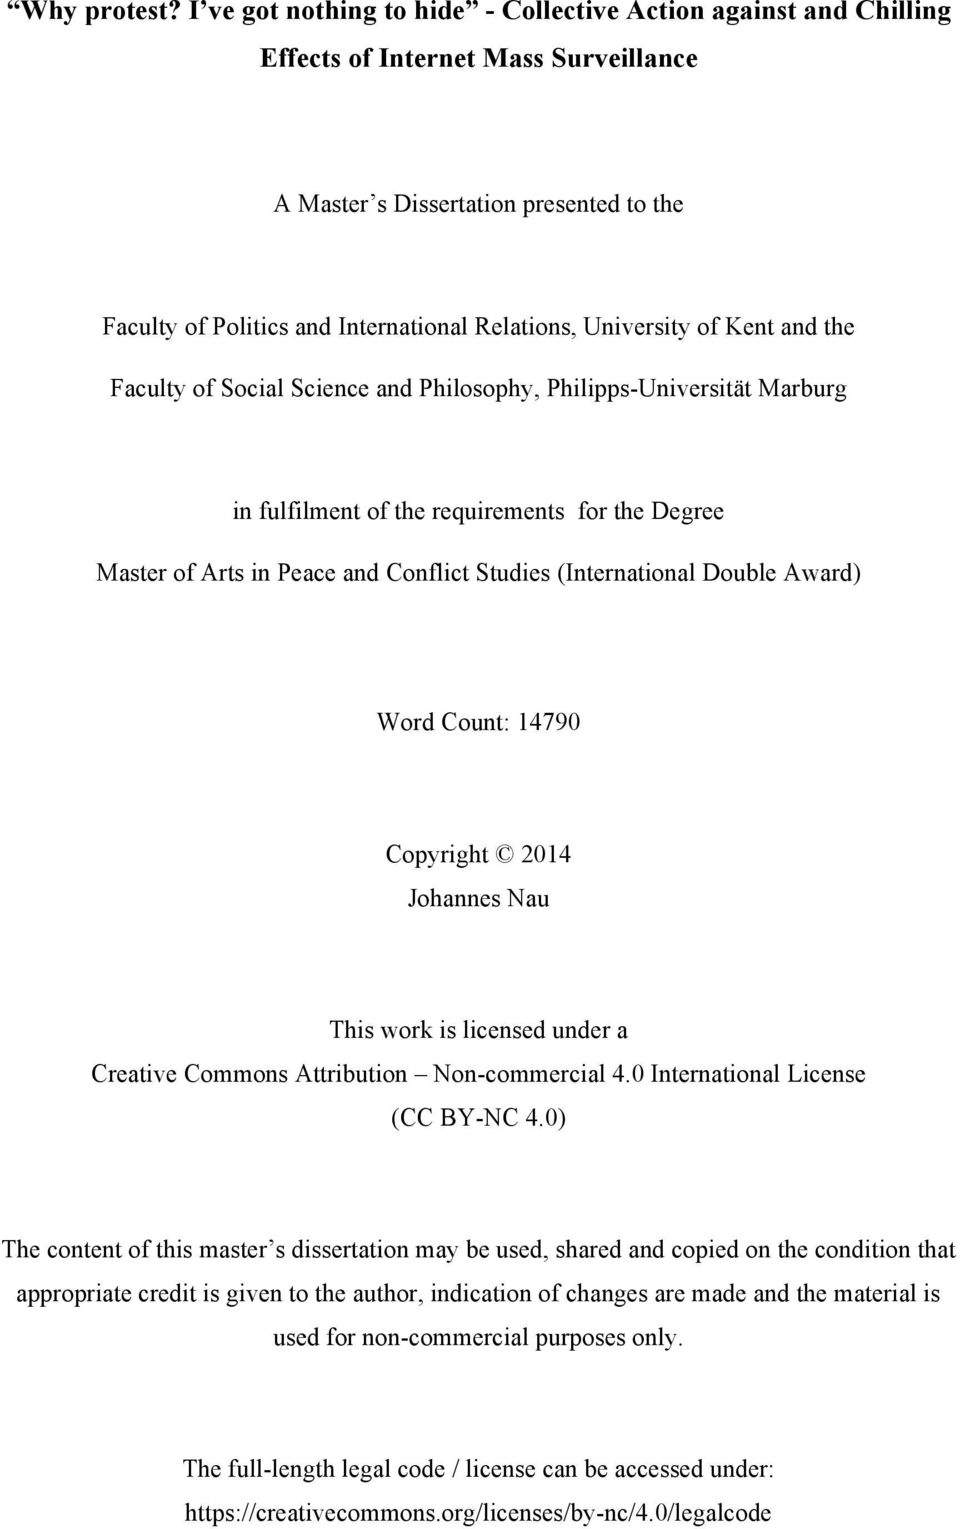 University of Kent and the Faculty of Social Science and Philosophy, Philipps-Universität Marburg in fulfilment of the requirements for the Degree Master of Arts in Peace and Conflict Studies